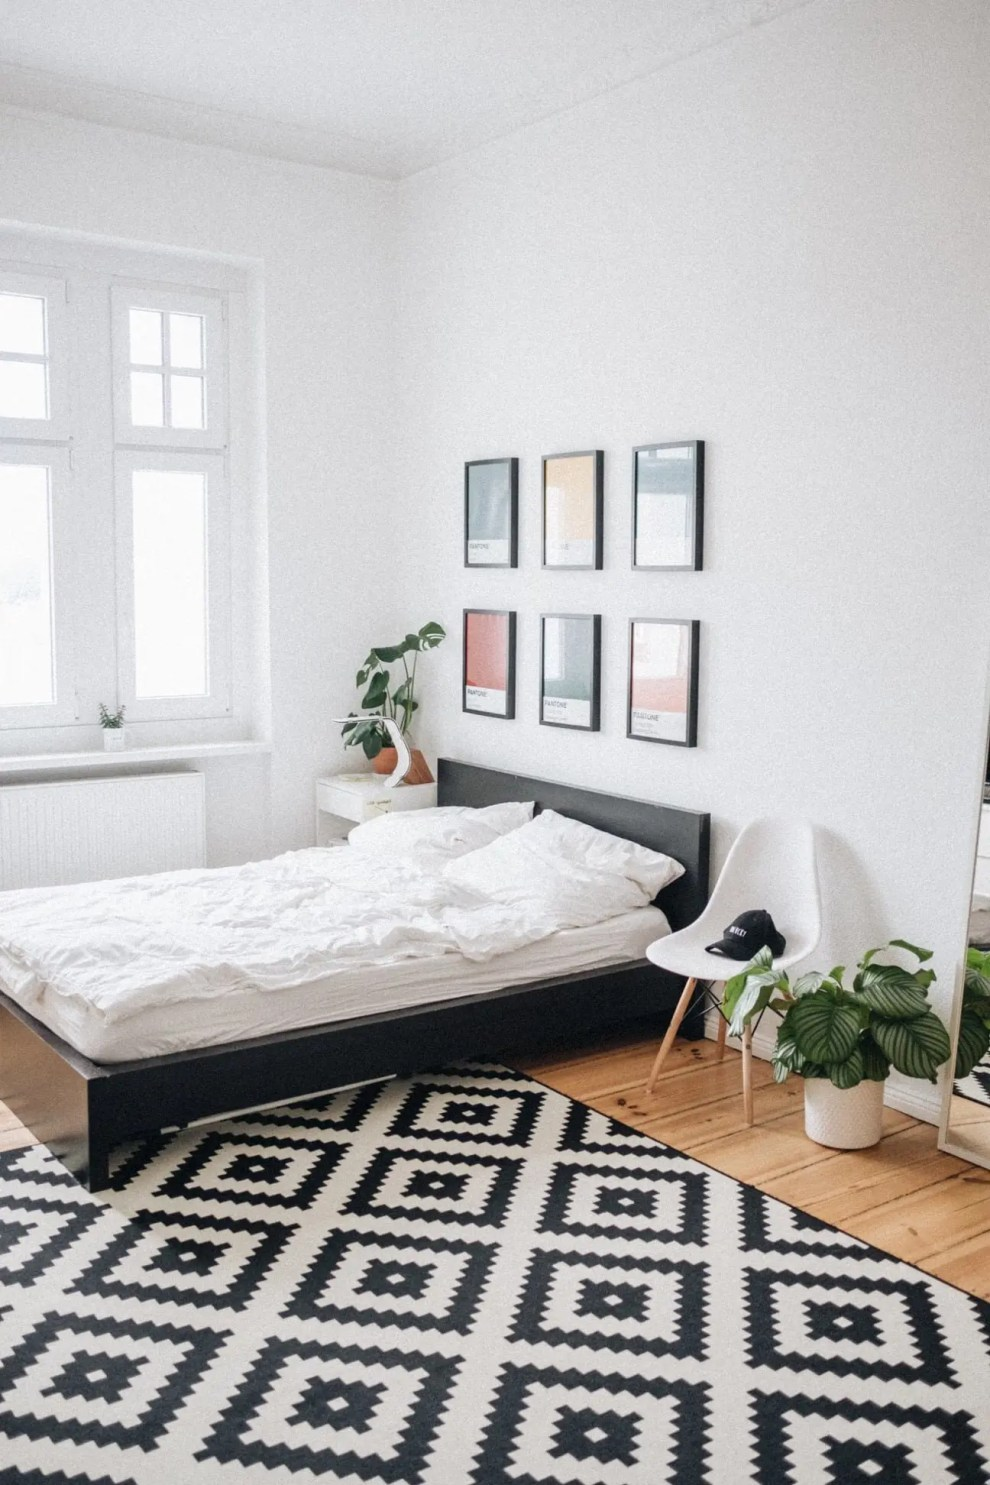 6ways to refresh your bedroom for summer